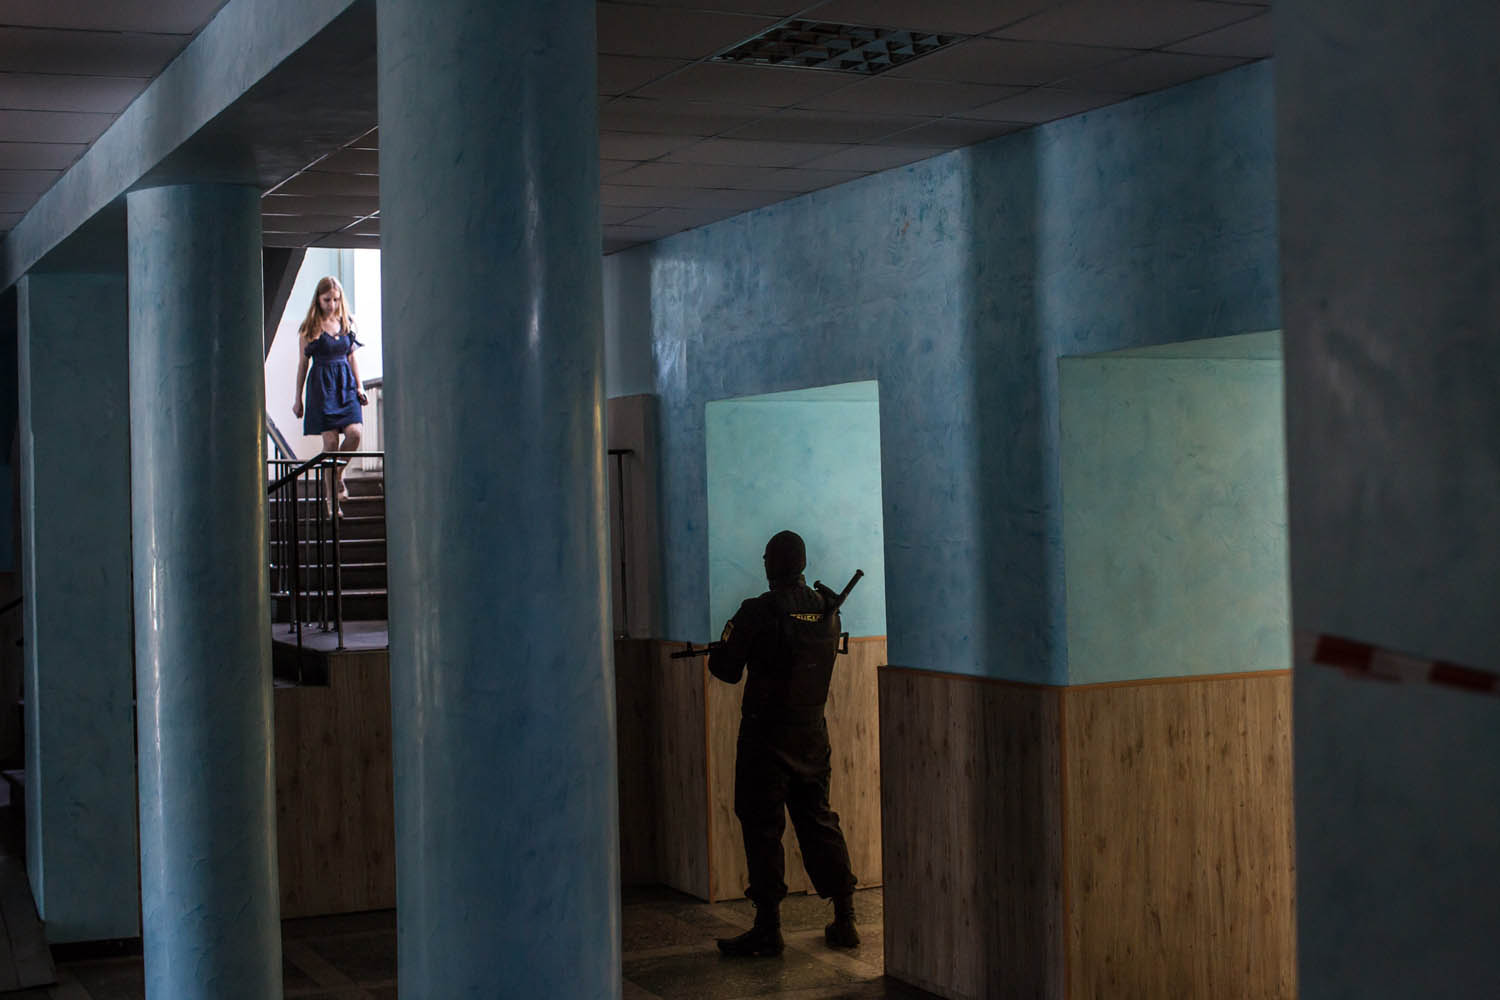 May 21, 2014. A member of the Donbass Battalion, a pro-Ukraine militia, secures the lobby during a meeting with the local mayor to ensure the integrity of the upcoming presidential election in Dobropillya, Ukraine.